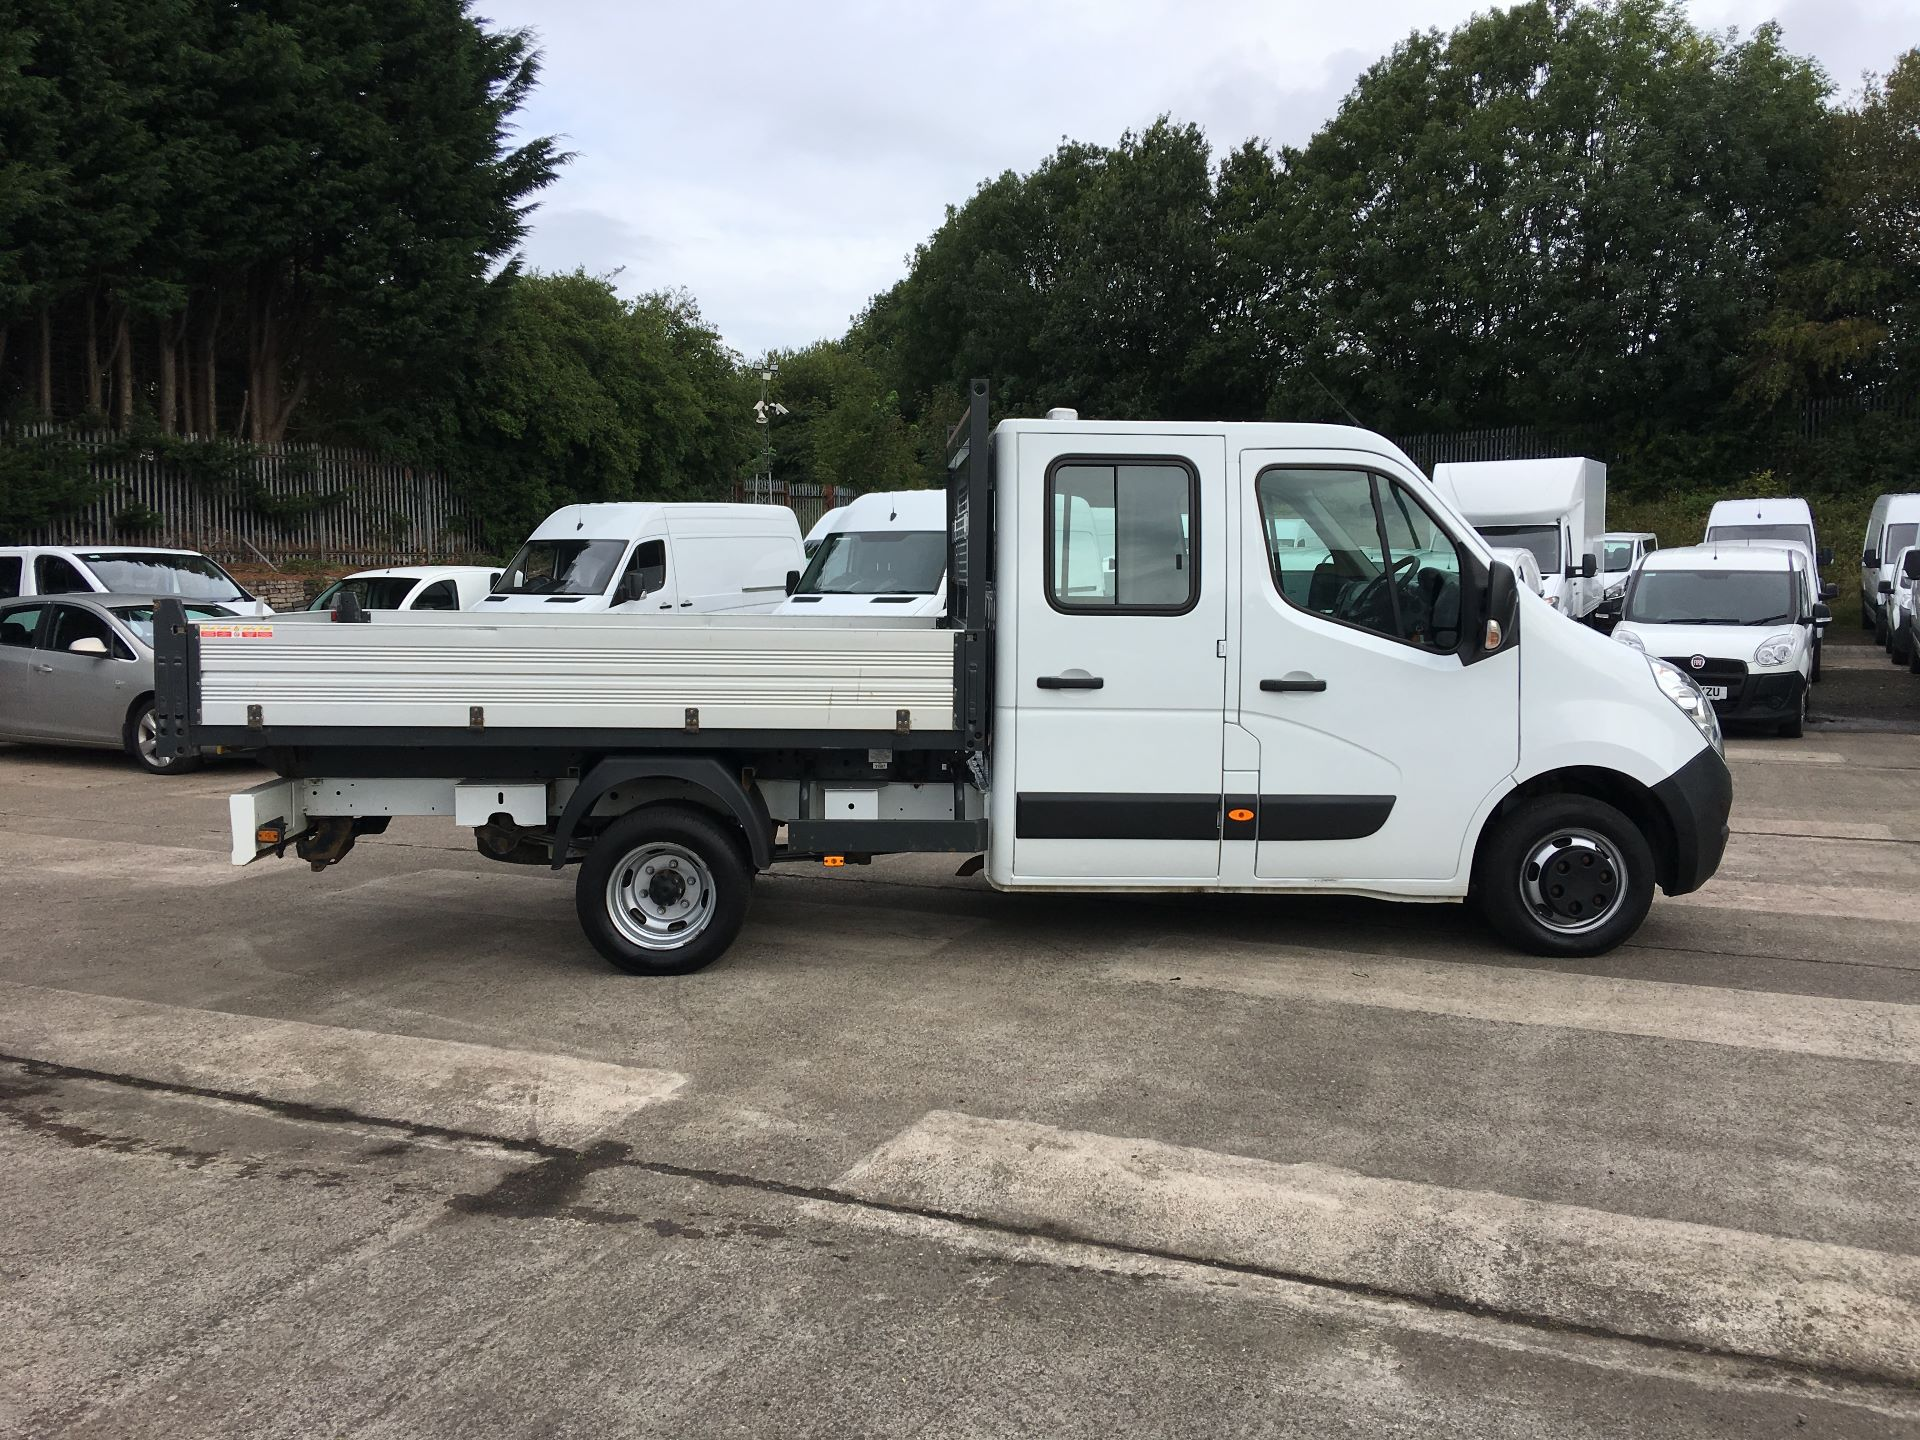 2016 Vauxhall Movano 35 L3 DIESEL RWD 2.3 CDTI 125PS D/CAB TIPPER EURO 5 (YT16WLR) Image 7